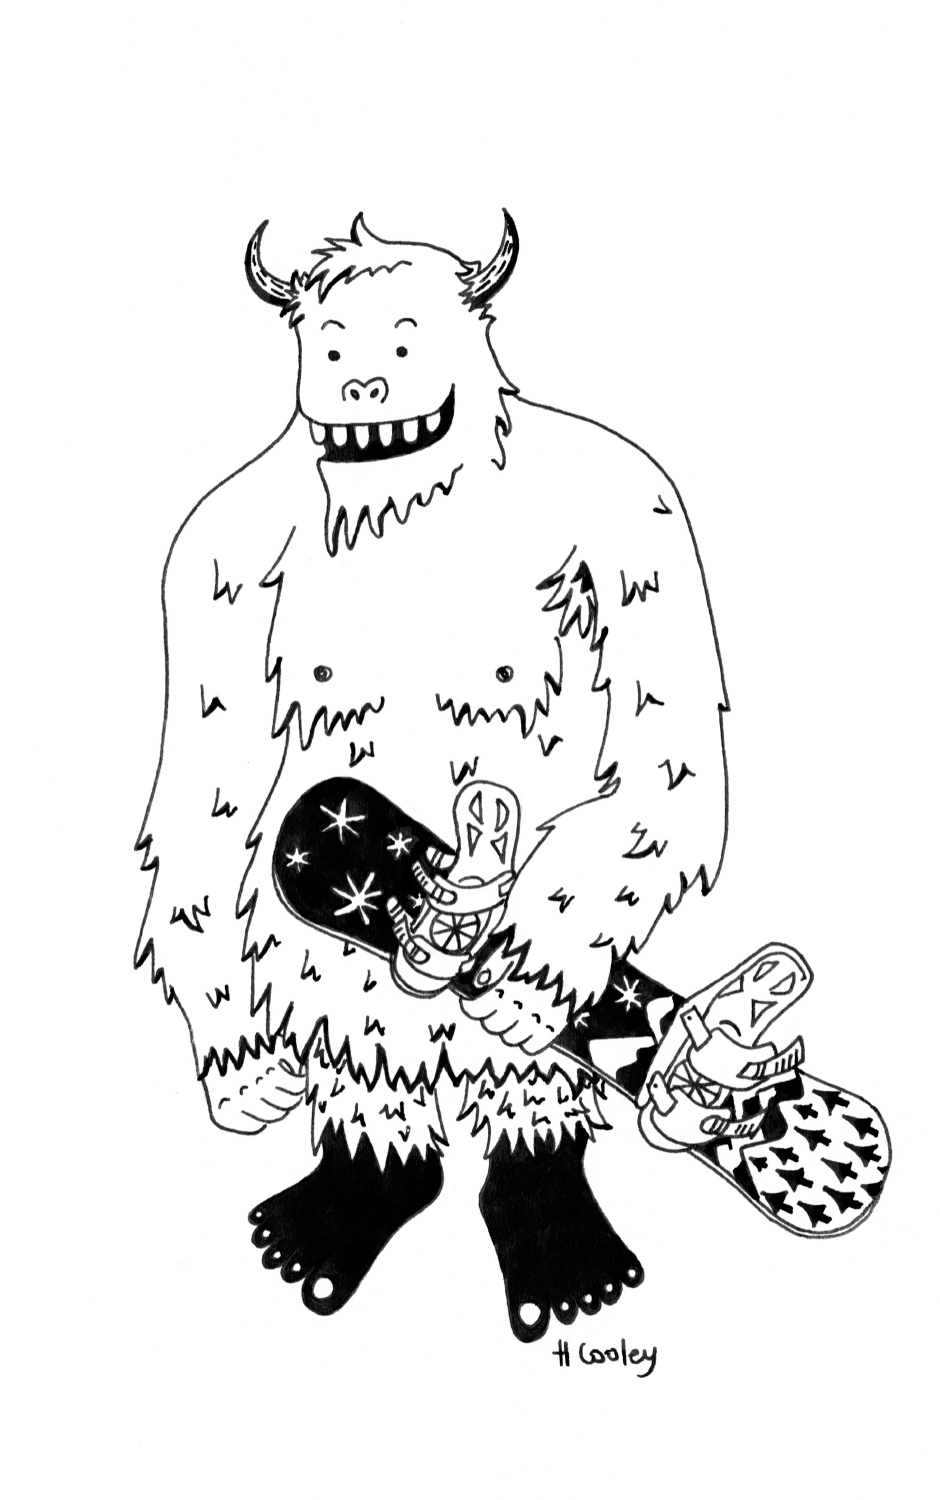 Monsters_15_Abominable-snowboarder.jpg